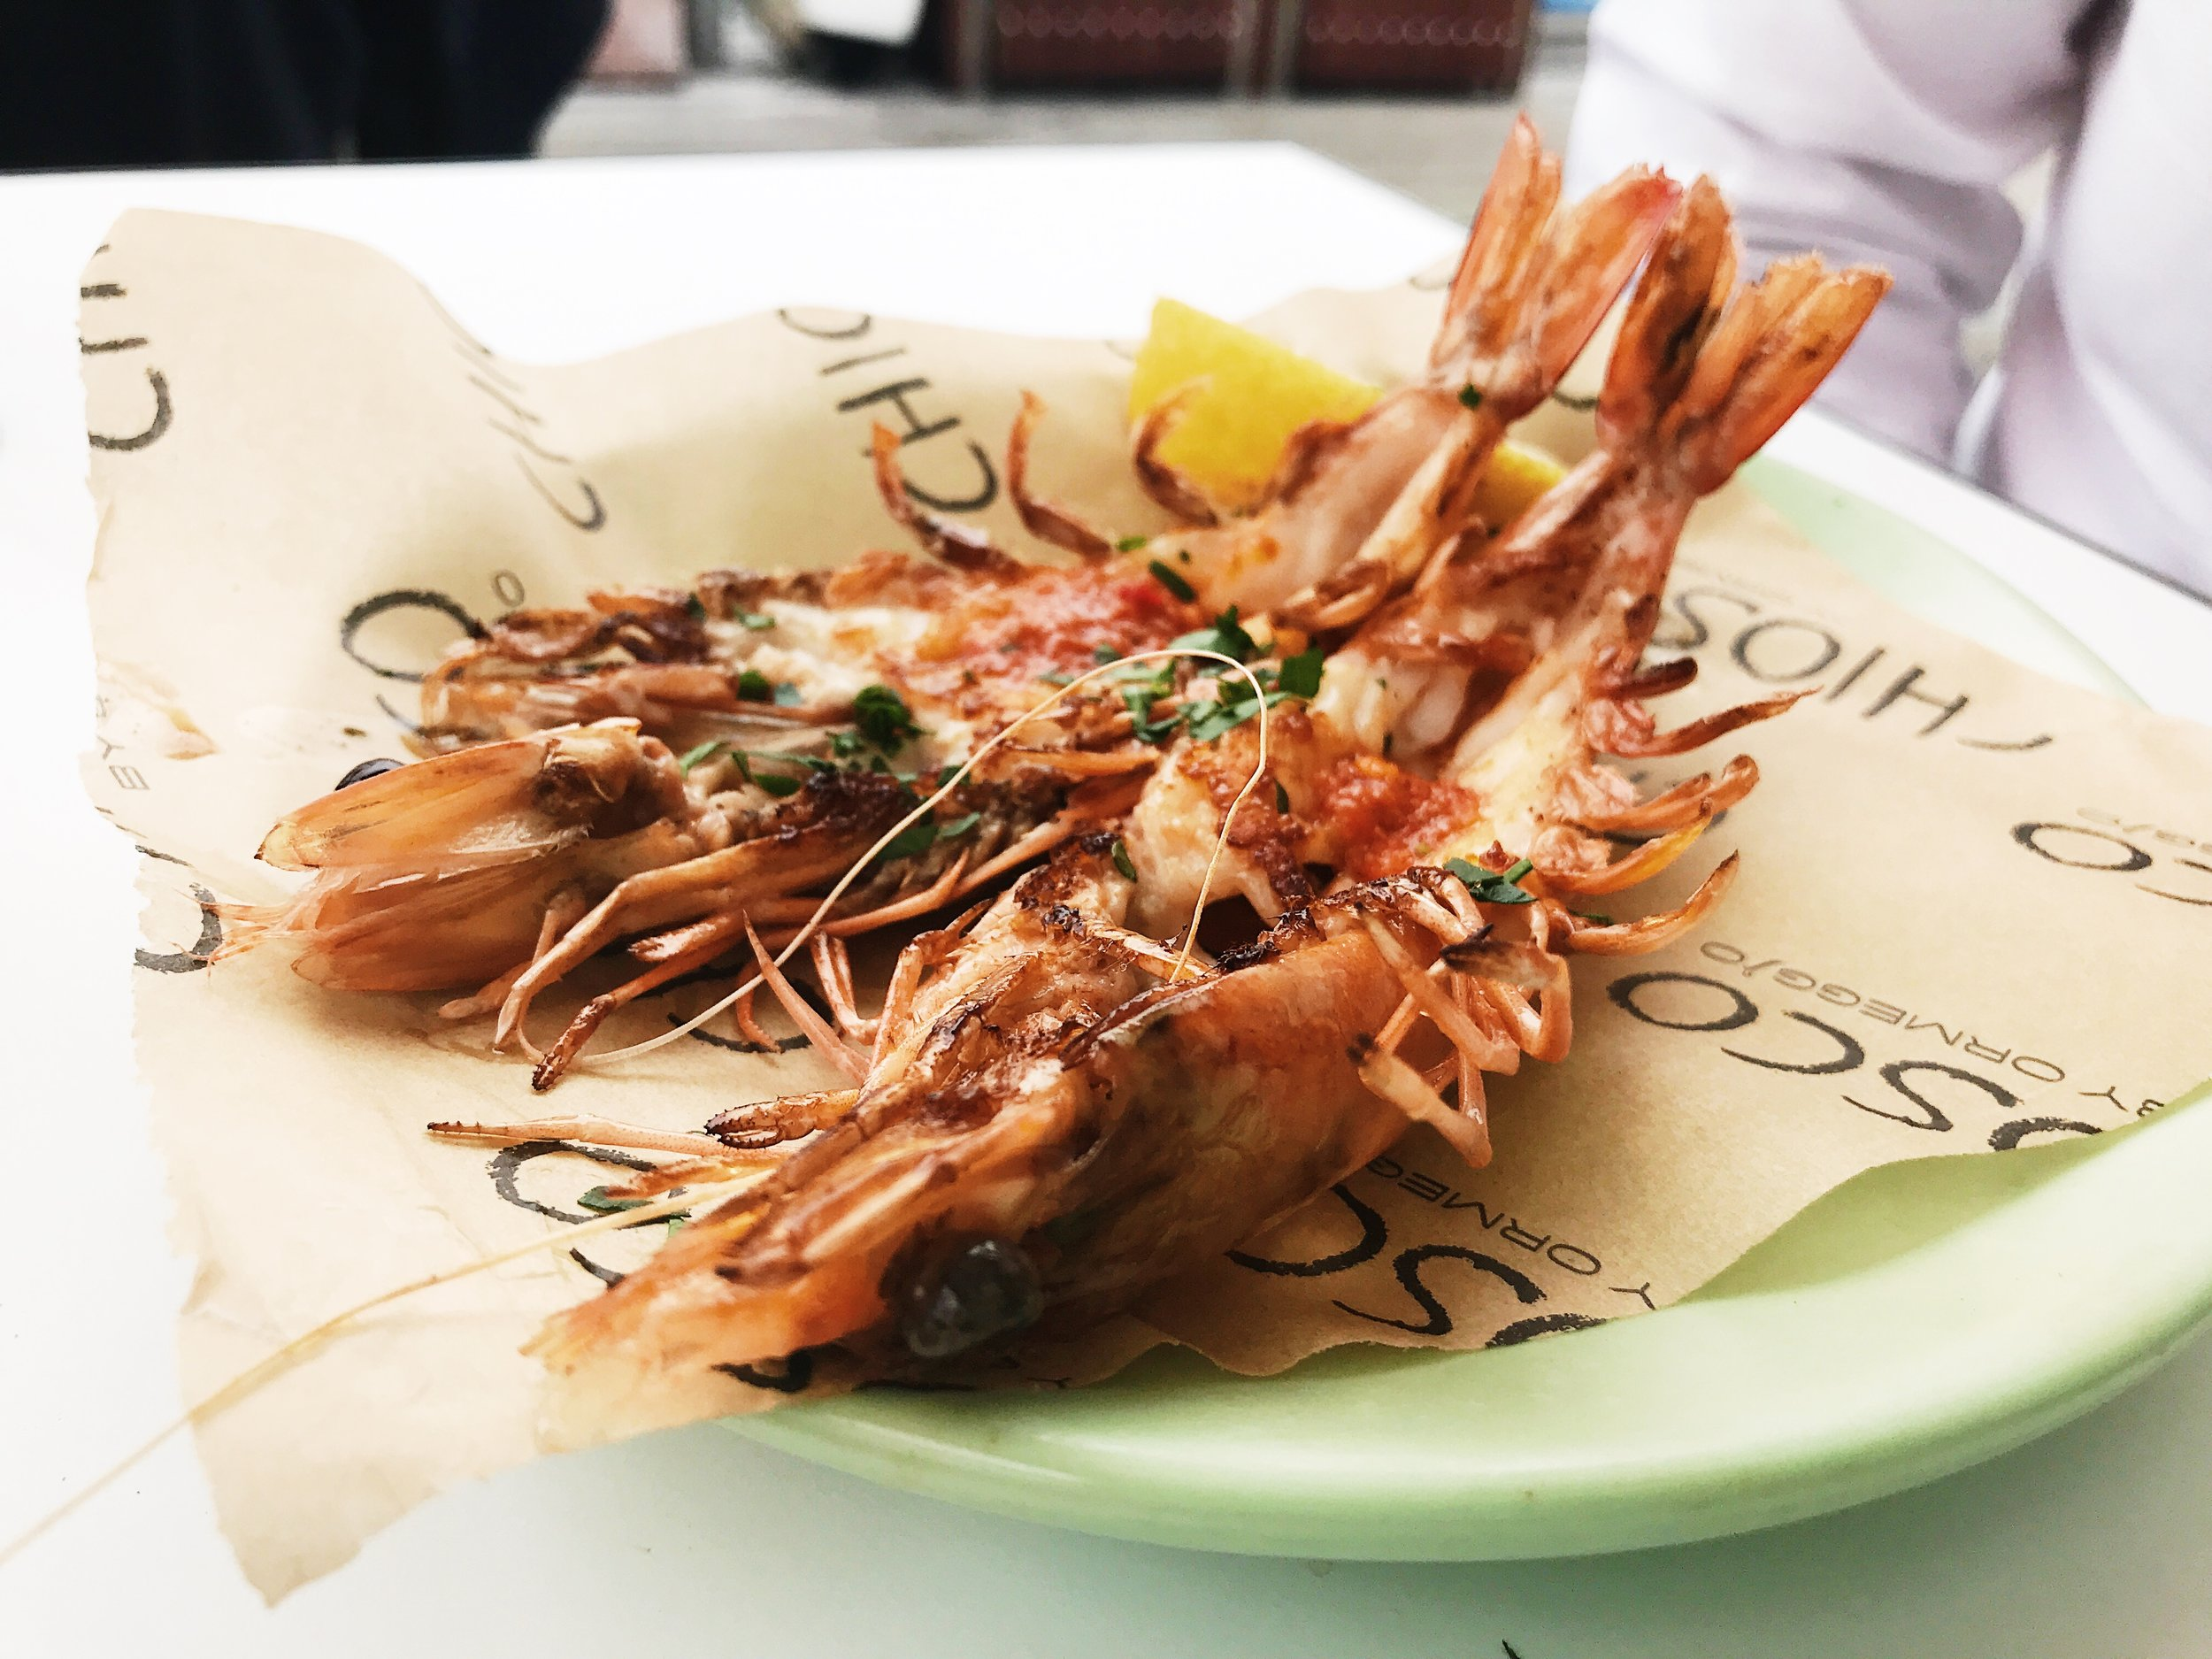 Gamberoni: Chargrilled king prawns with a chilli and lemon dressing.